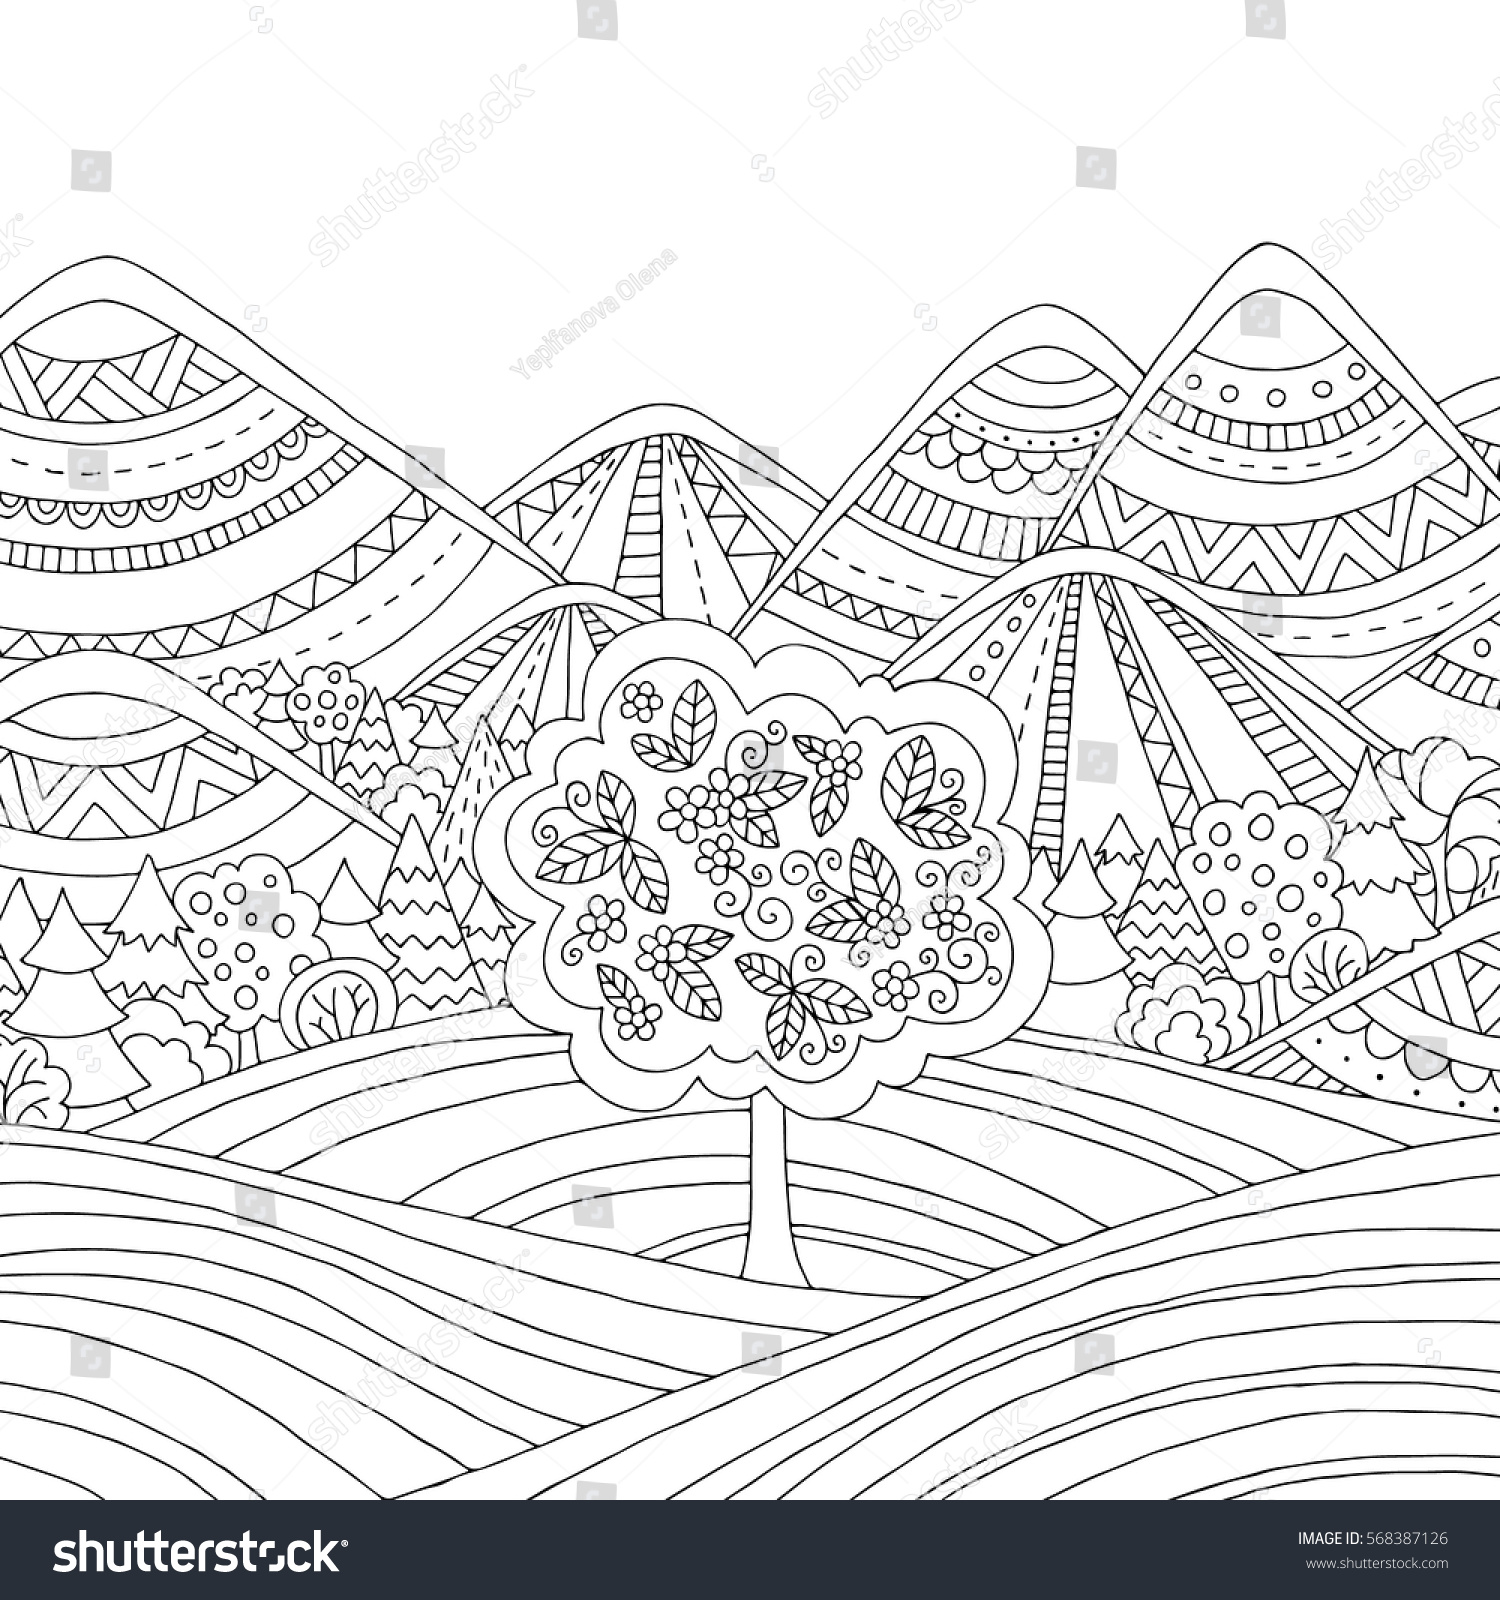 Printable Coloring Page Adults Mountain Landscape Stock Vector ...